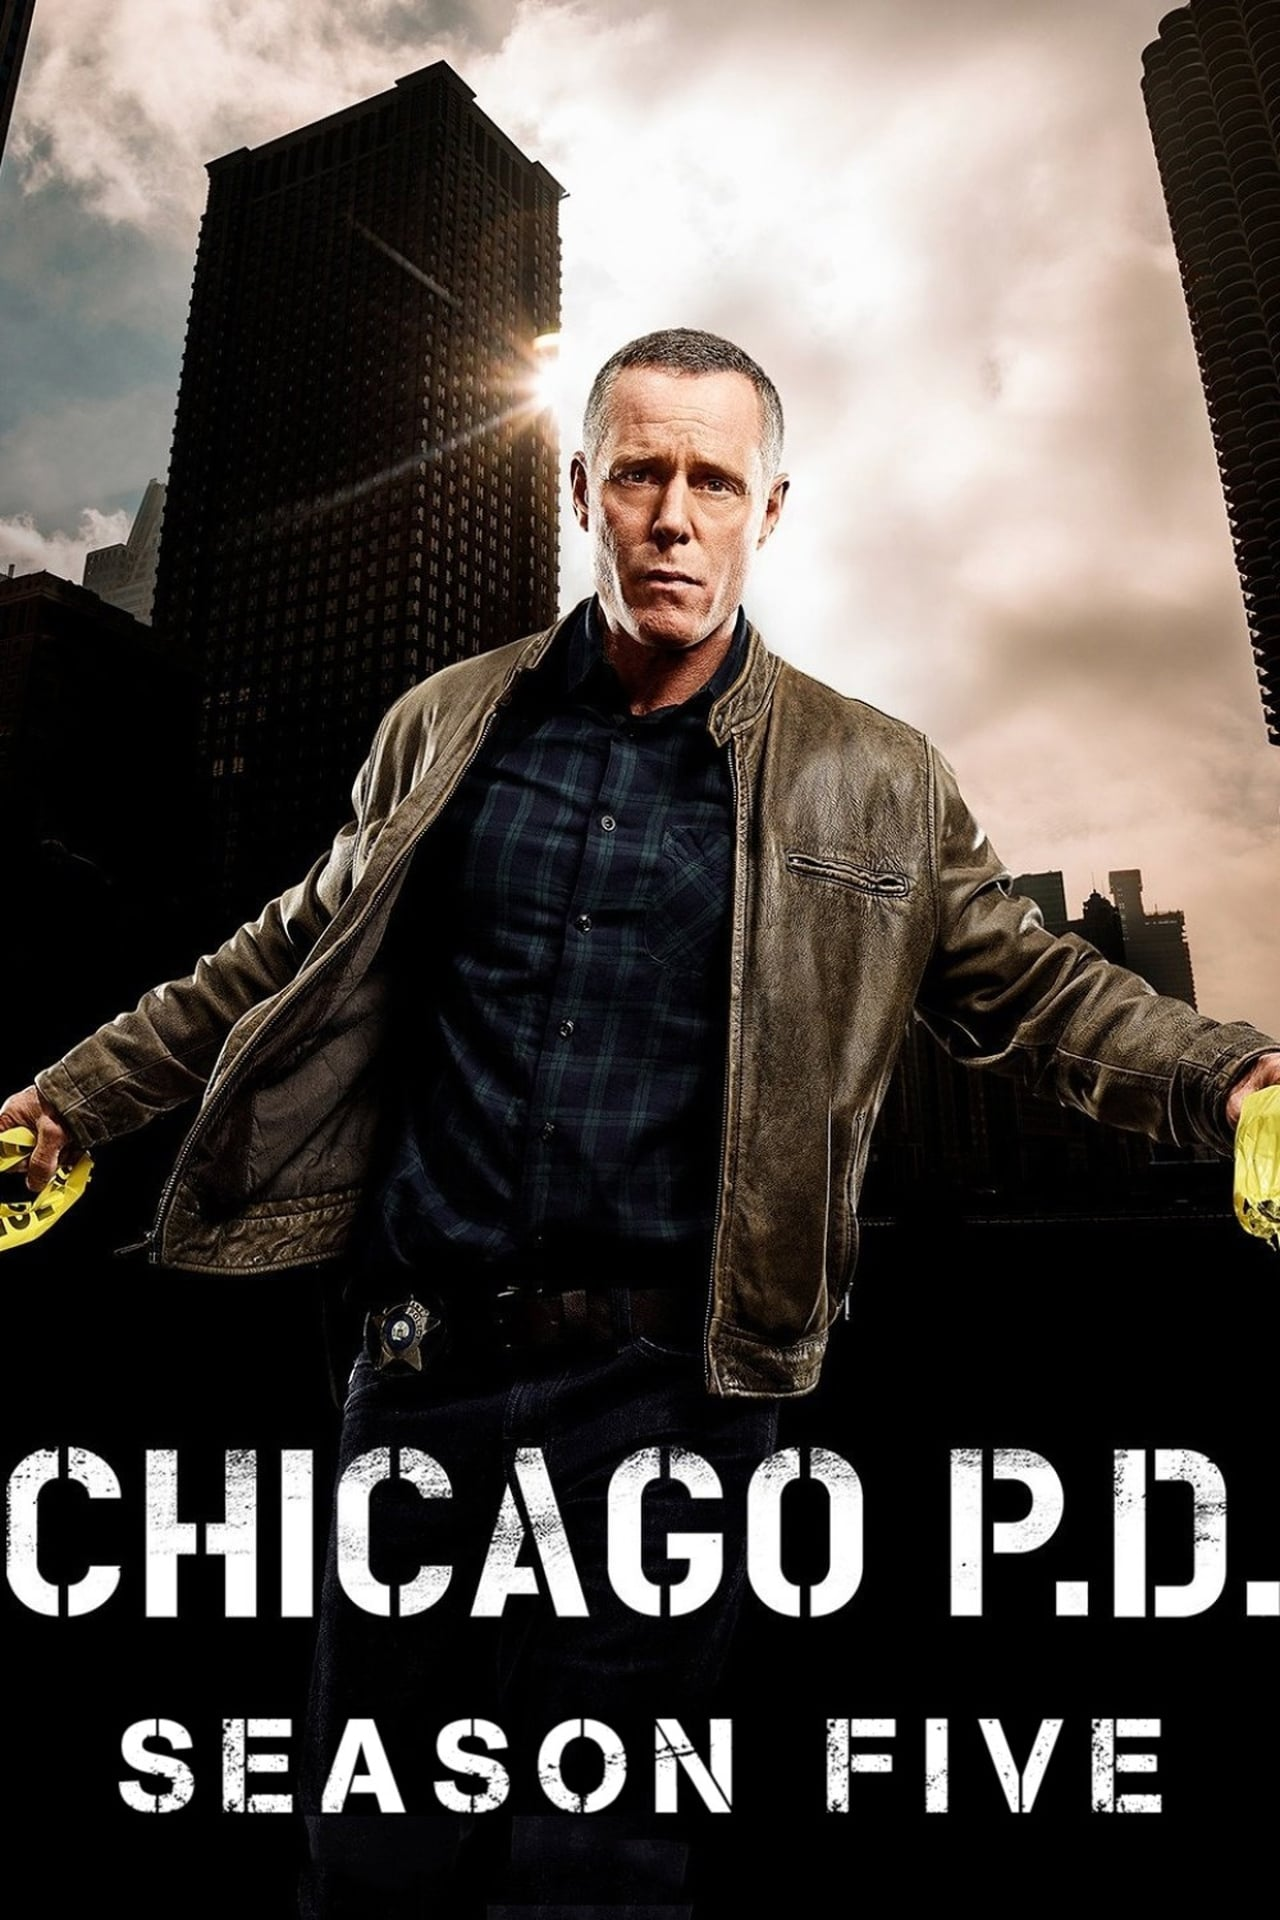 Putlocker Chicago P.d. Season 5 (2017)